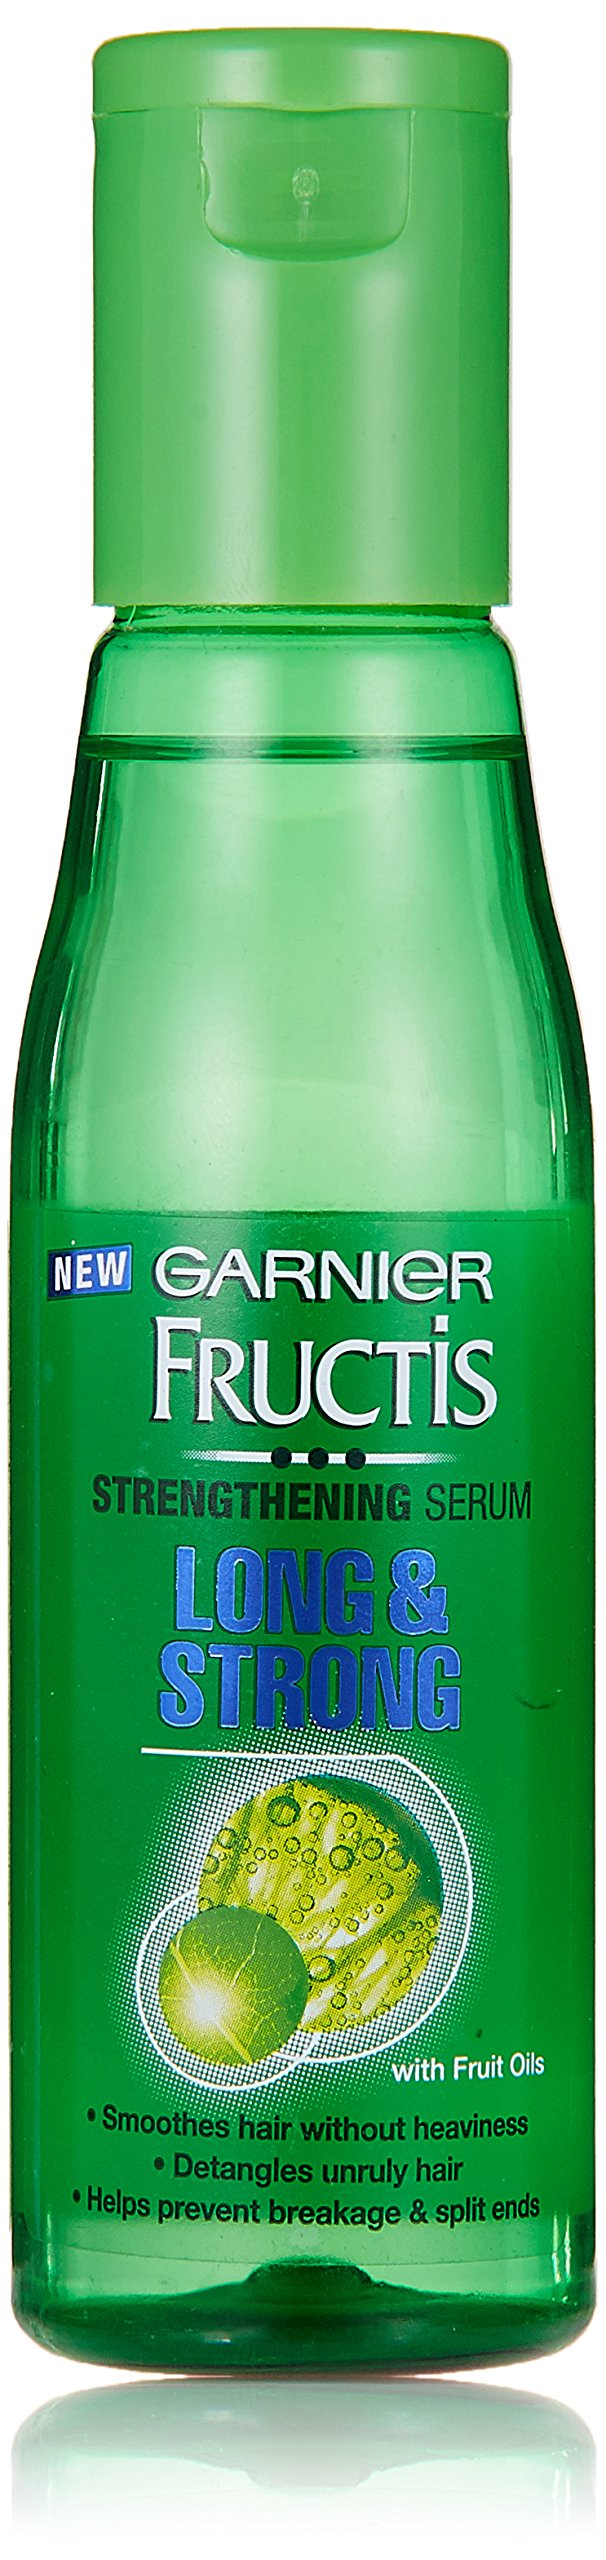 Garnier Fruits Long and Strong Serum with Fruit Oils, 100ml product image